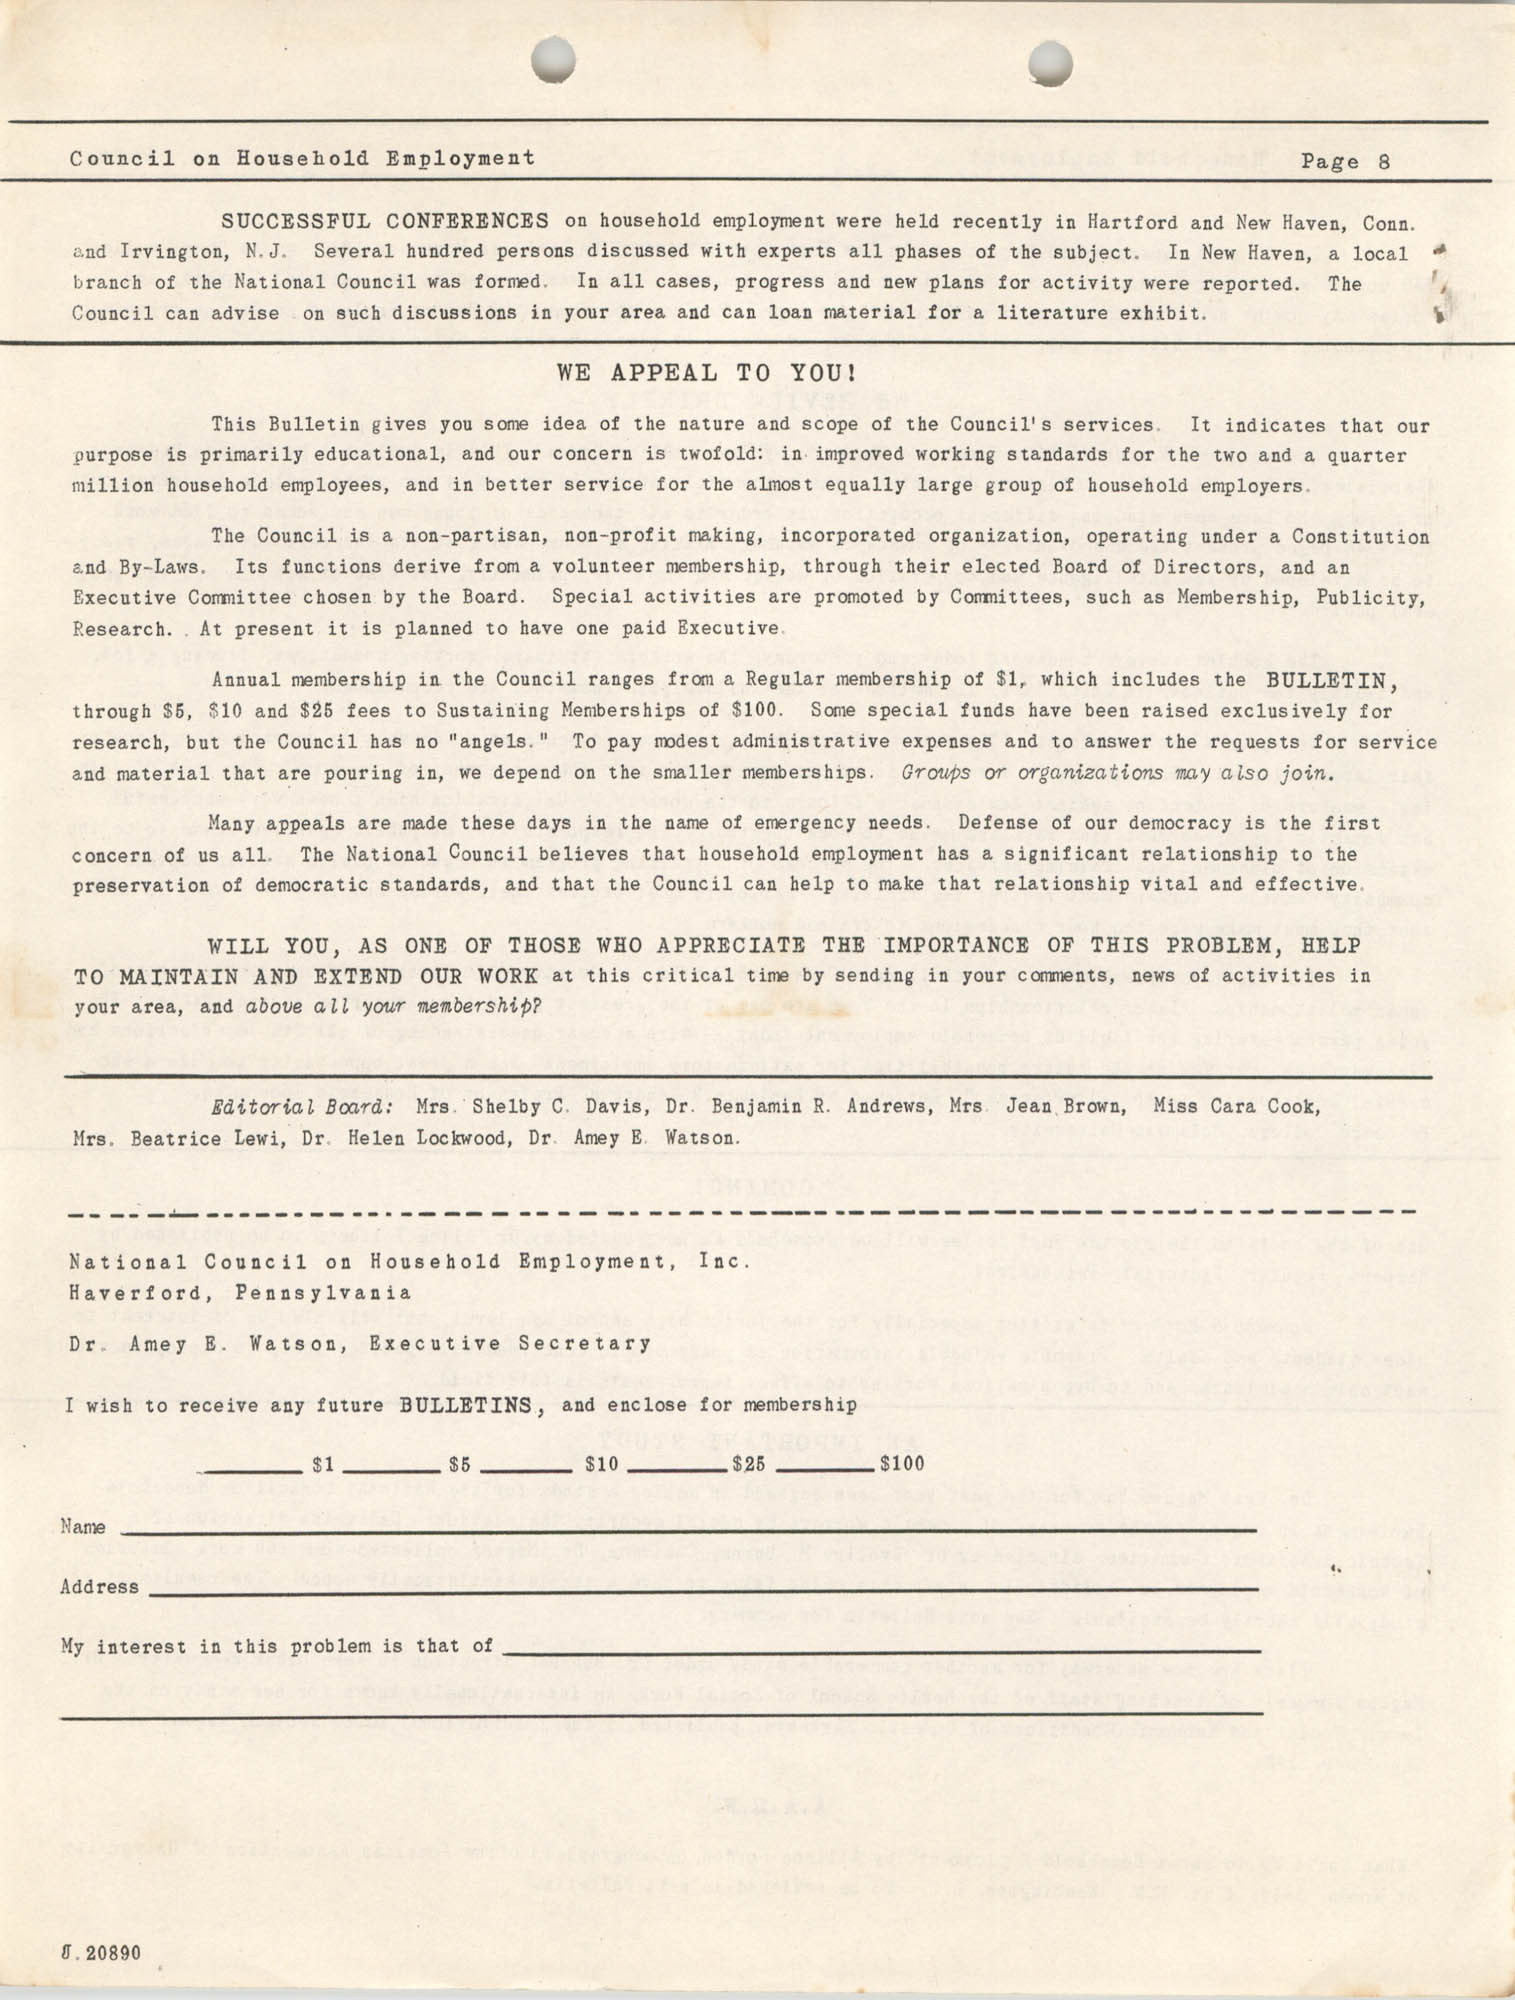 Bulletin of the National Council on Household Employment, Series II, No. 1, December 1940, Page 8